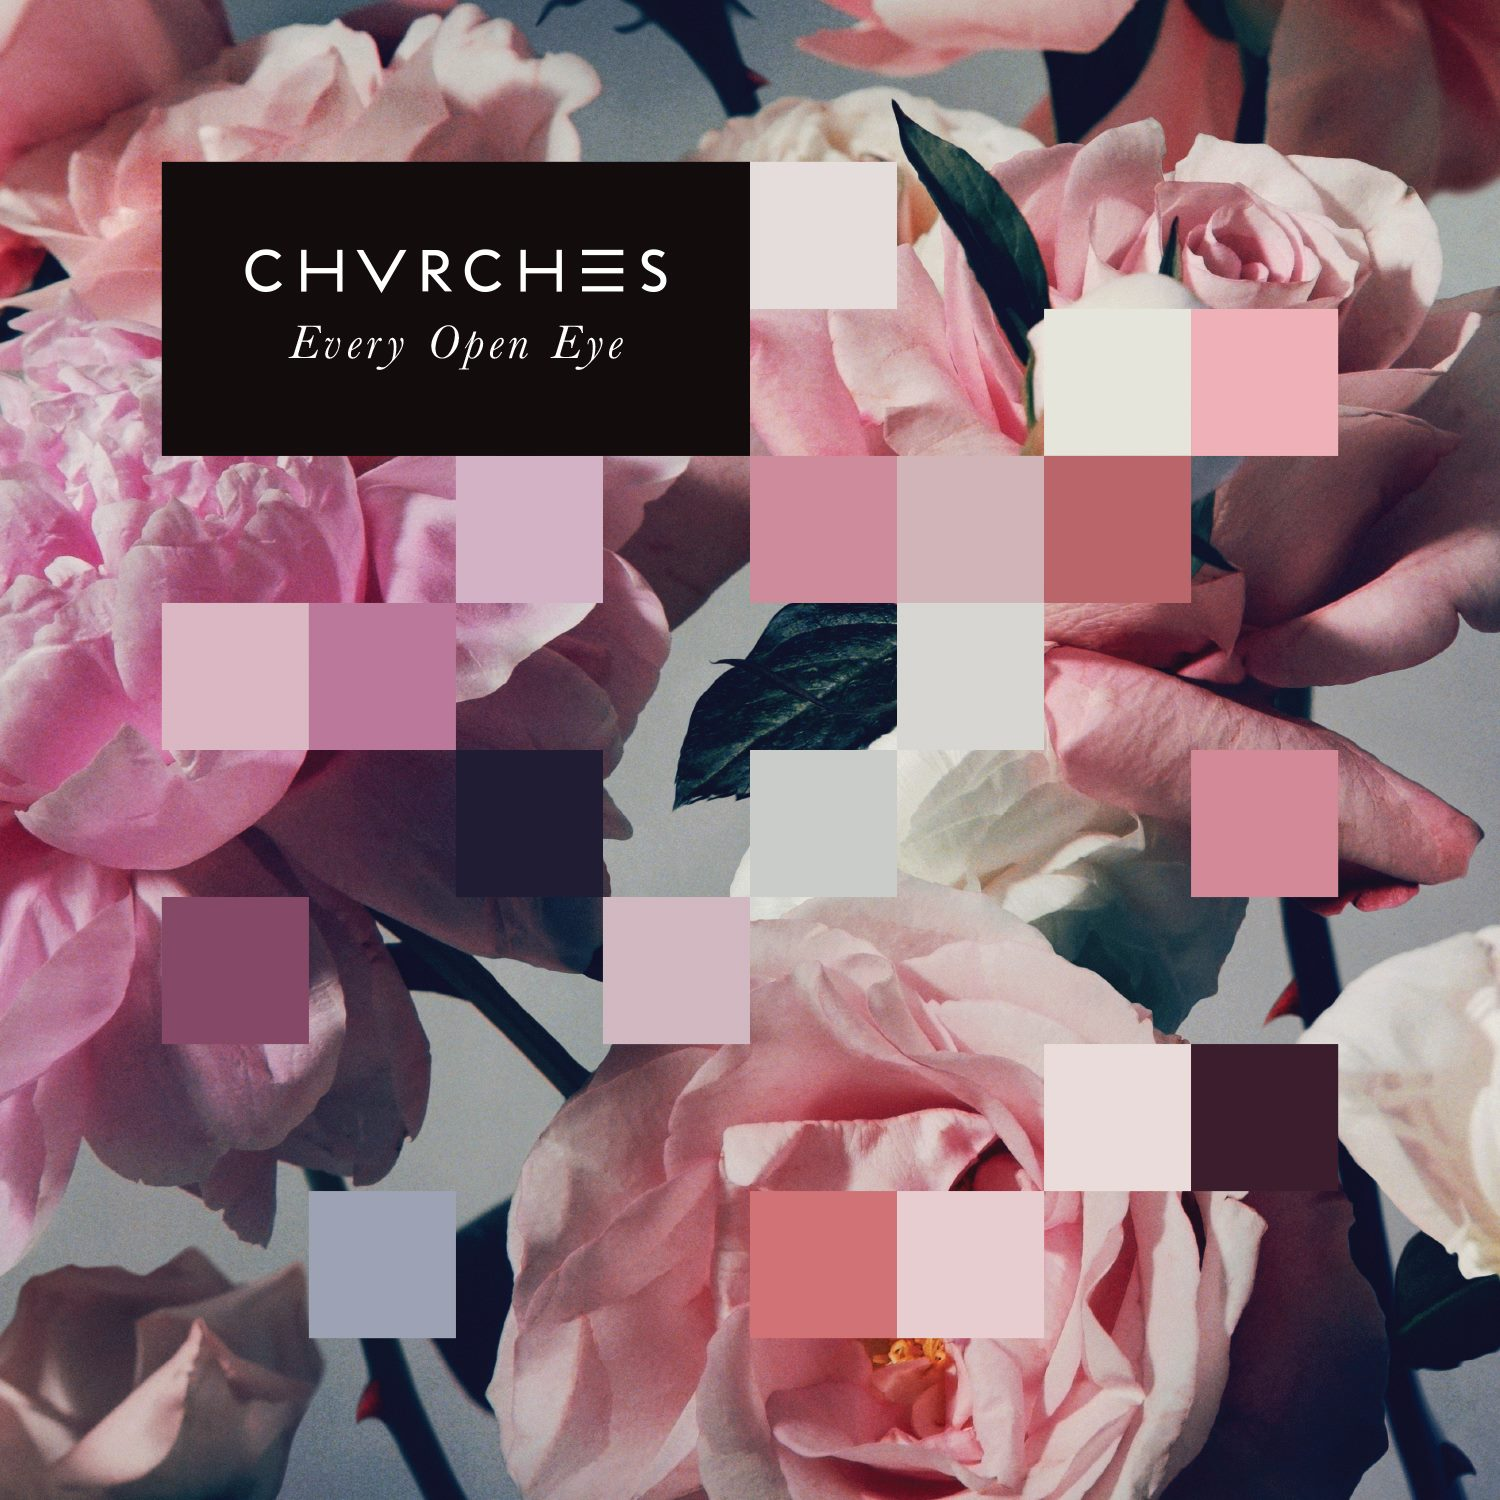 Review of CHVRCHES 'Every Open Eye' out September 25th via Glassnote/Virgin Records.